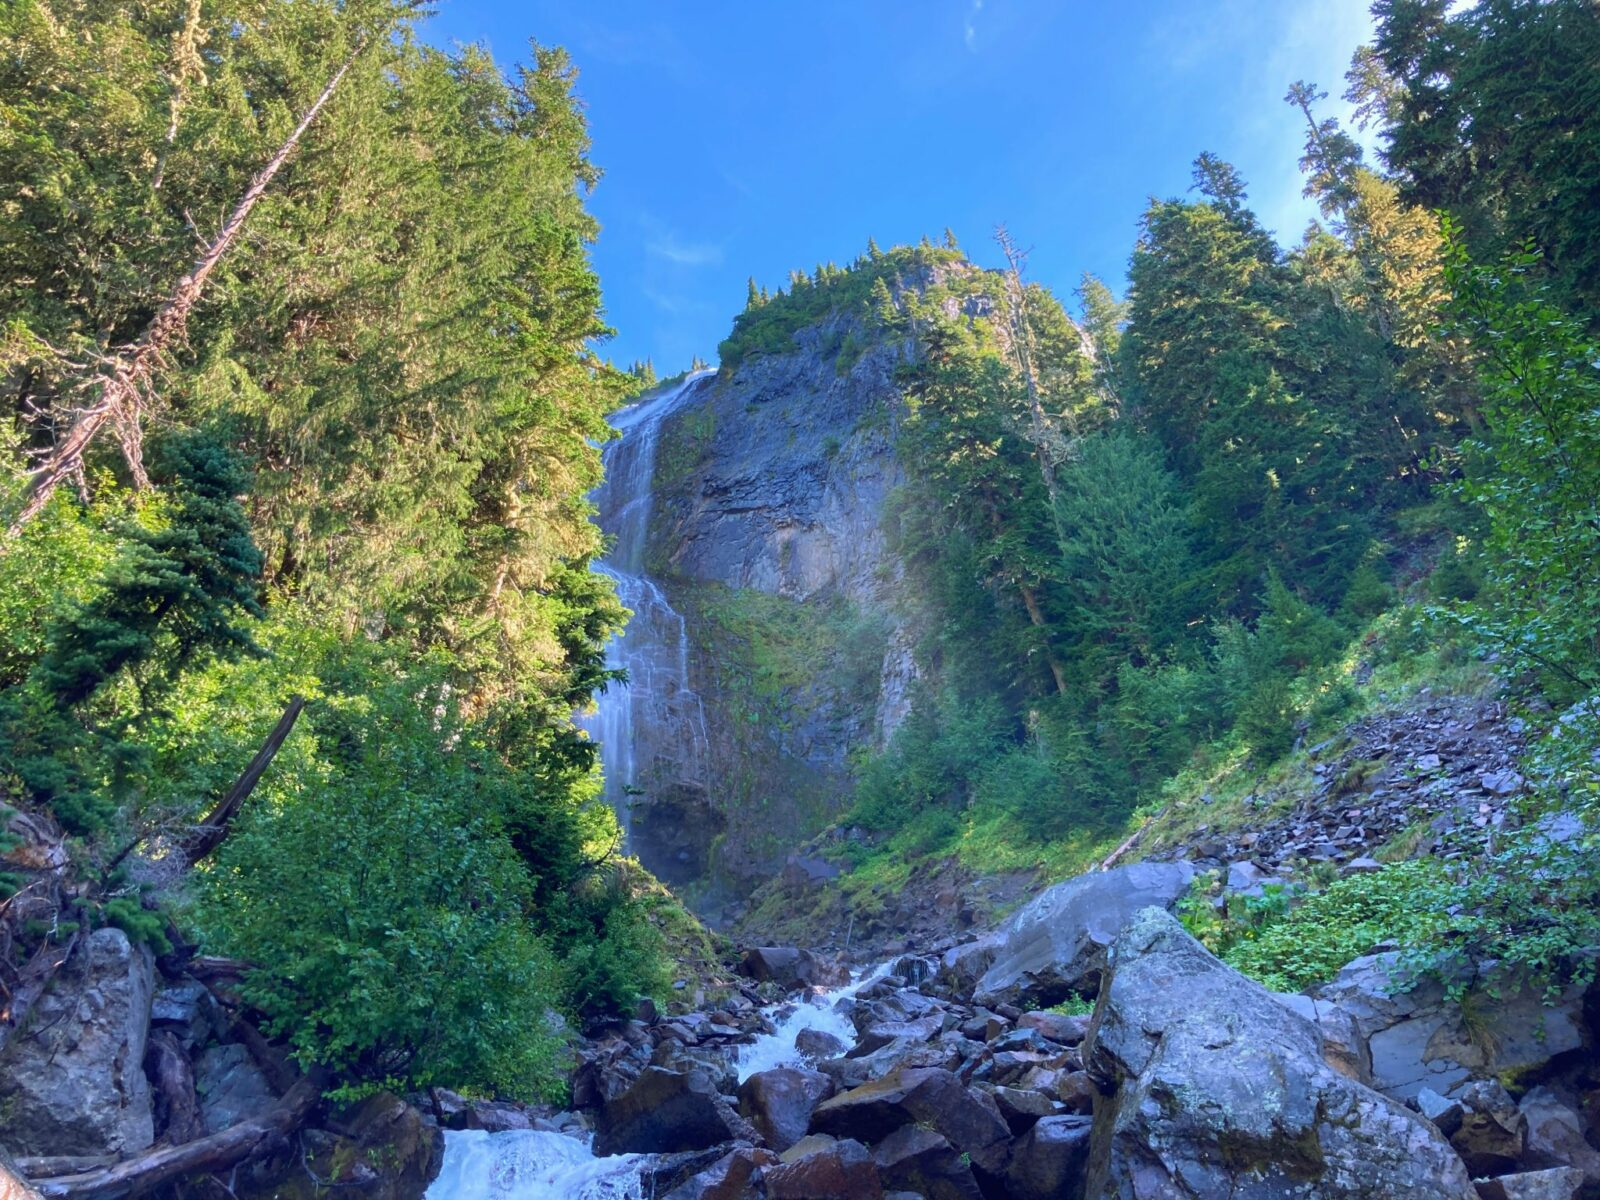 A steep and wide waterfall rolls over a cliff surrounded by forest. There are rocks and a creek in the foreground along the Spray Park trail in Mt Rainier National Park